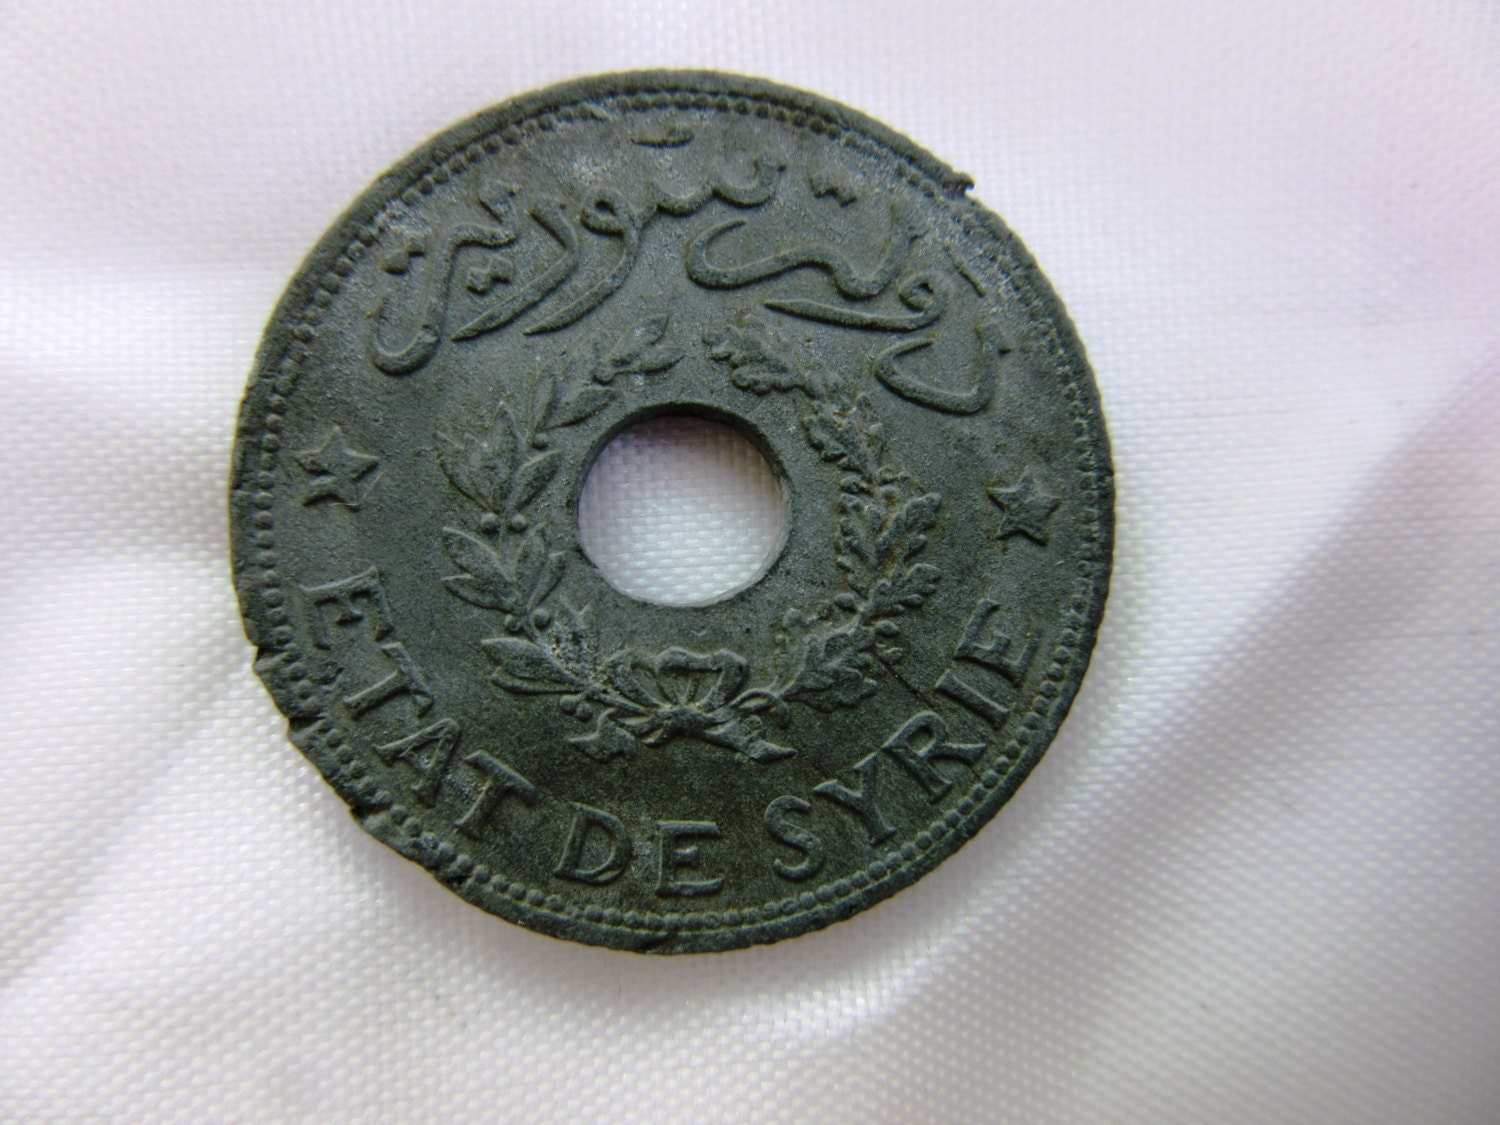 Old Syrian 1 Piaster Coin 1940 Circulated Syria Middle East